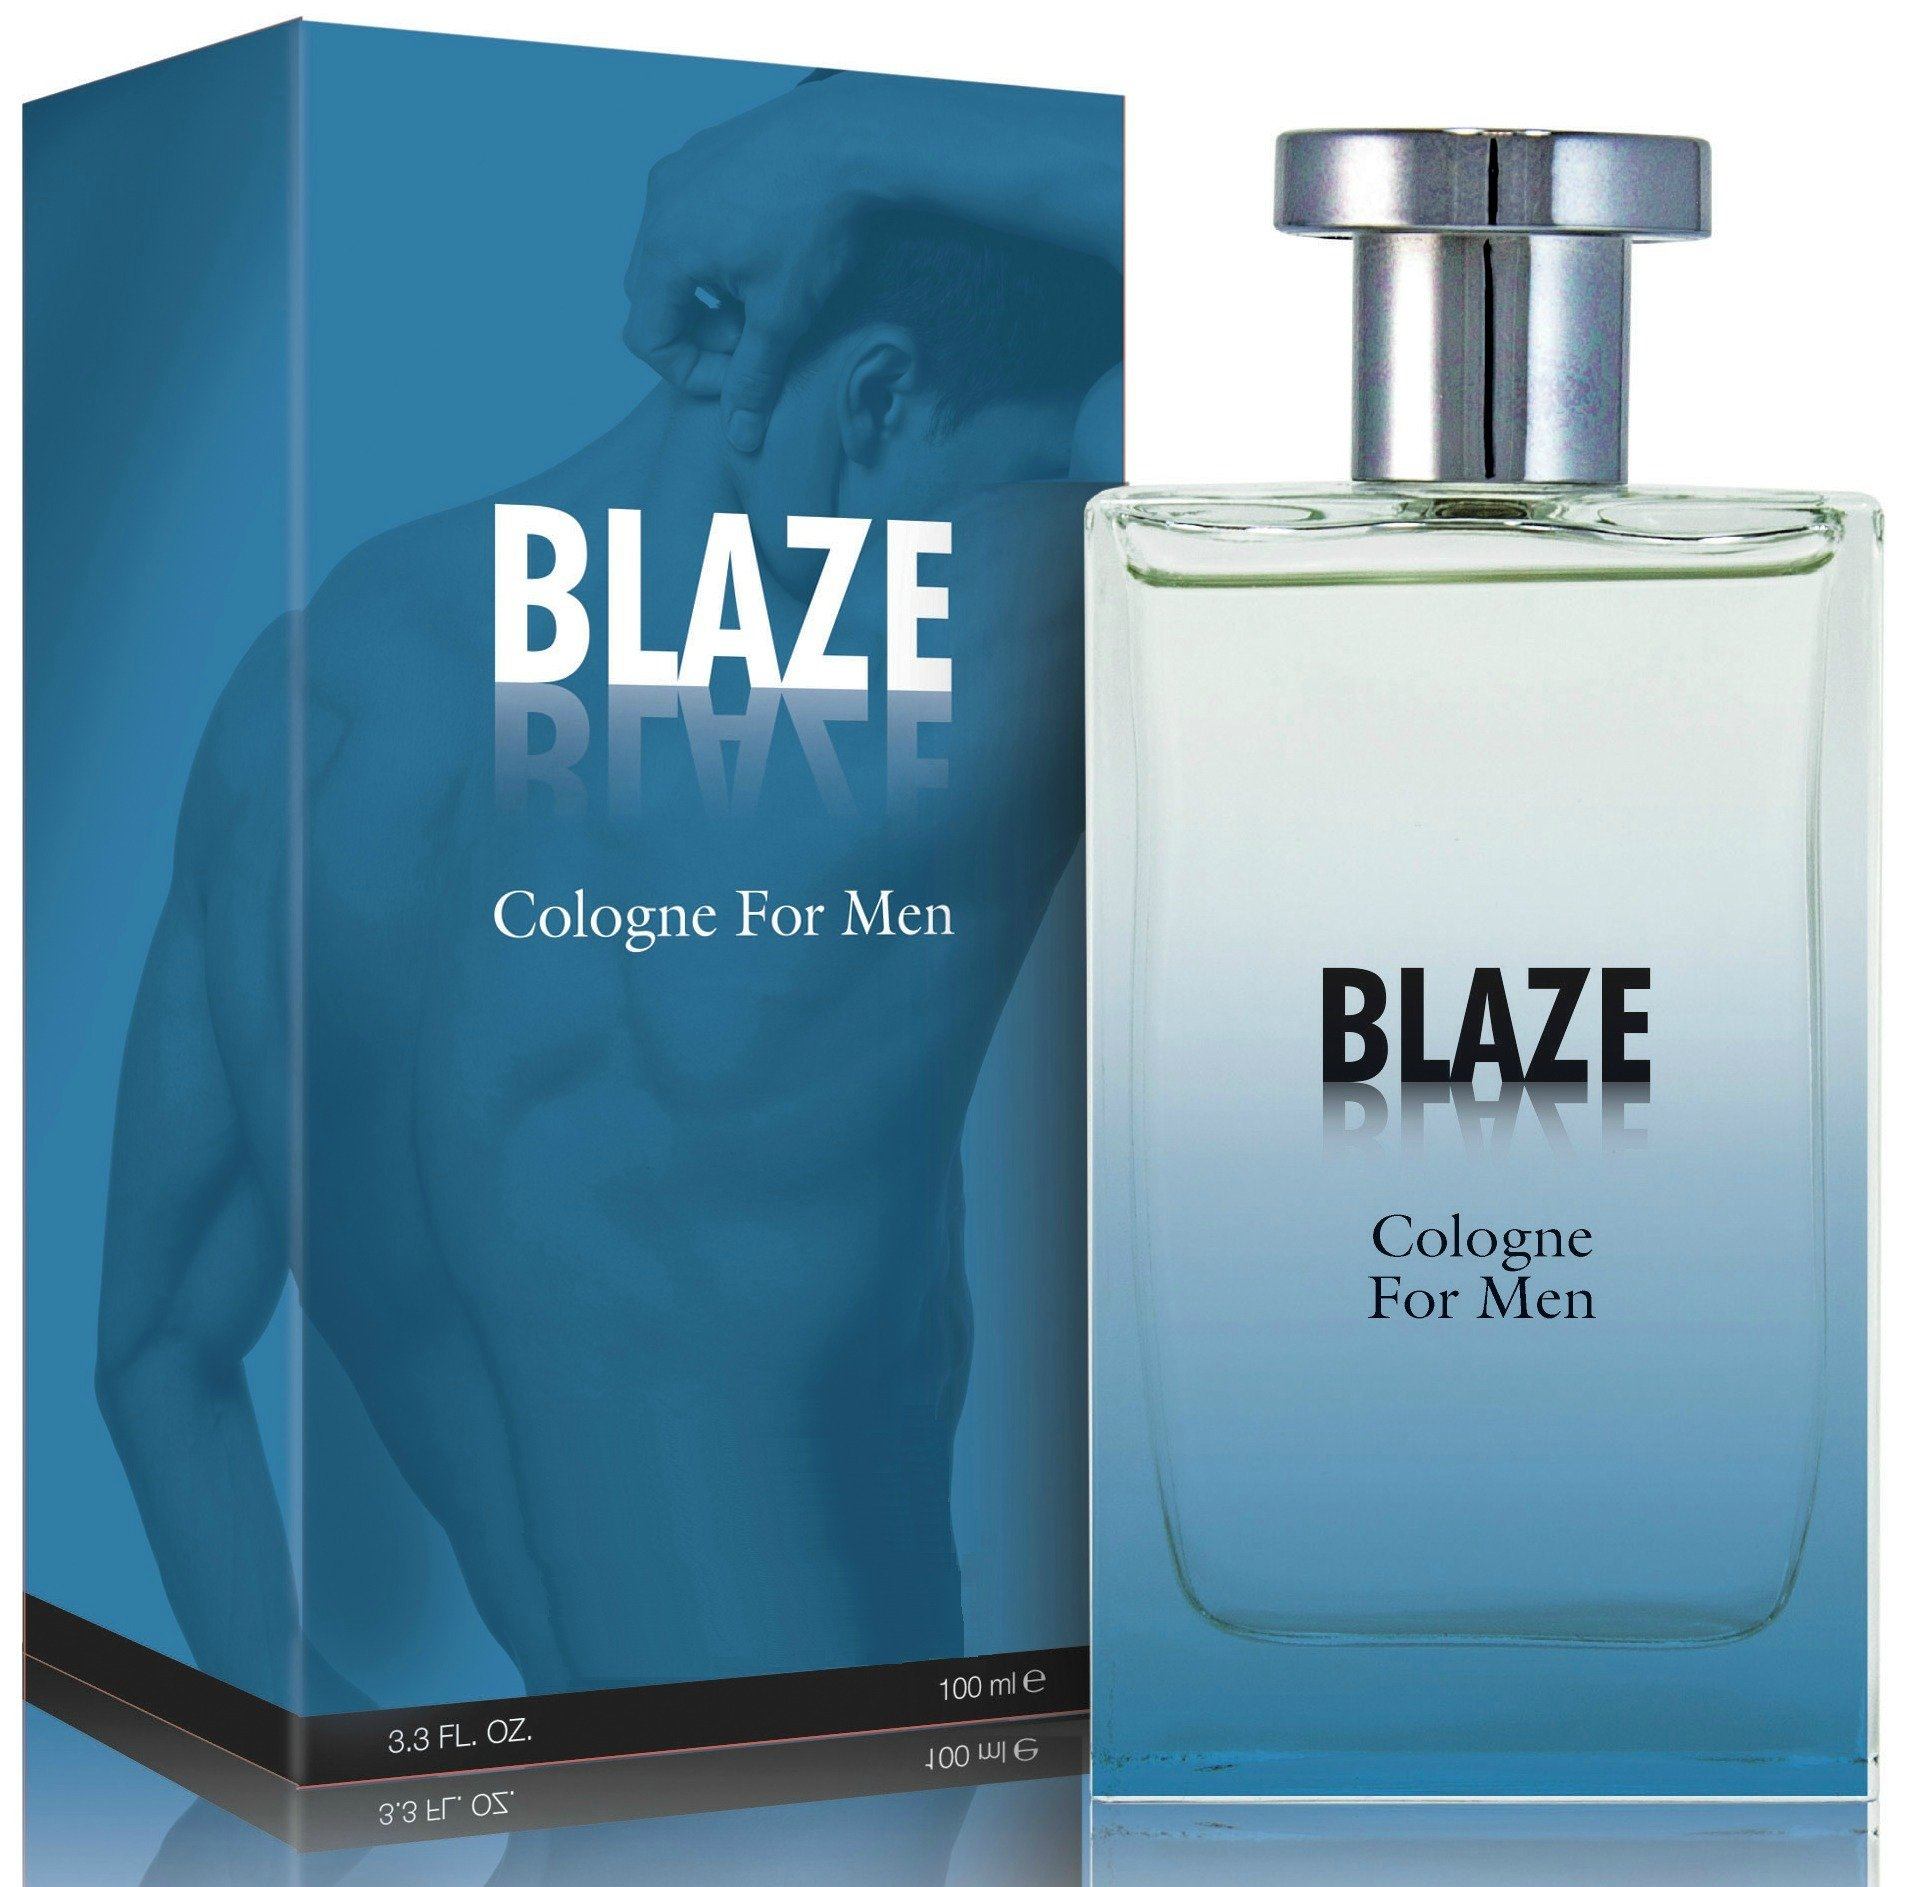 Blaze Cologne Spray for Men, 3.3 Ounces 100 Ml - Scent Similar to Abercrombie and Fitch Fierce by PREFERRED FRAGRANCE